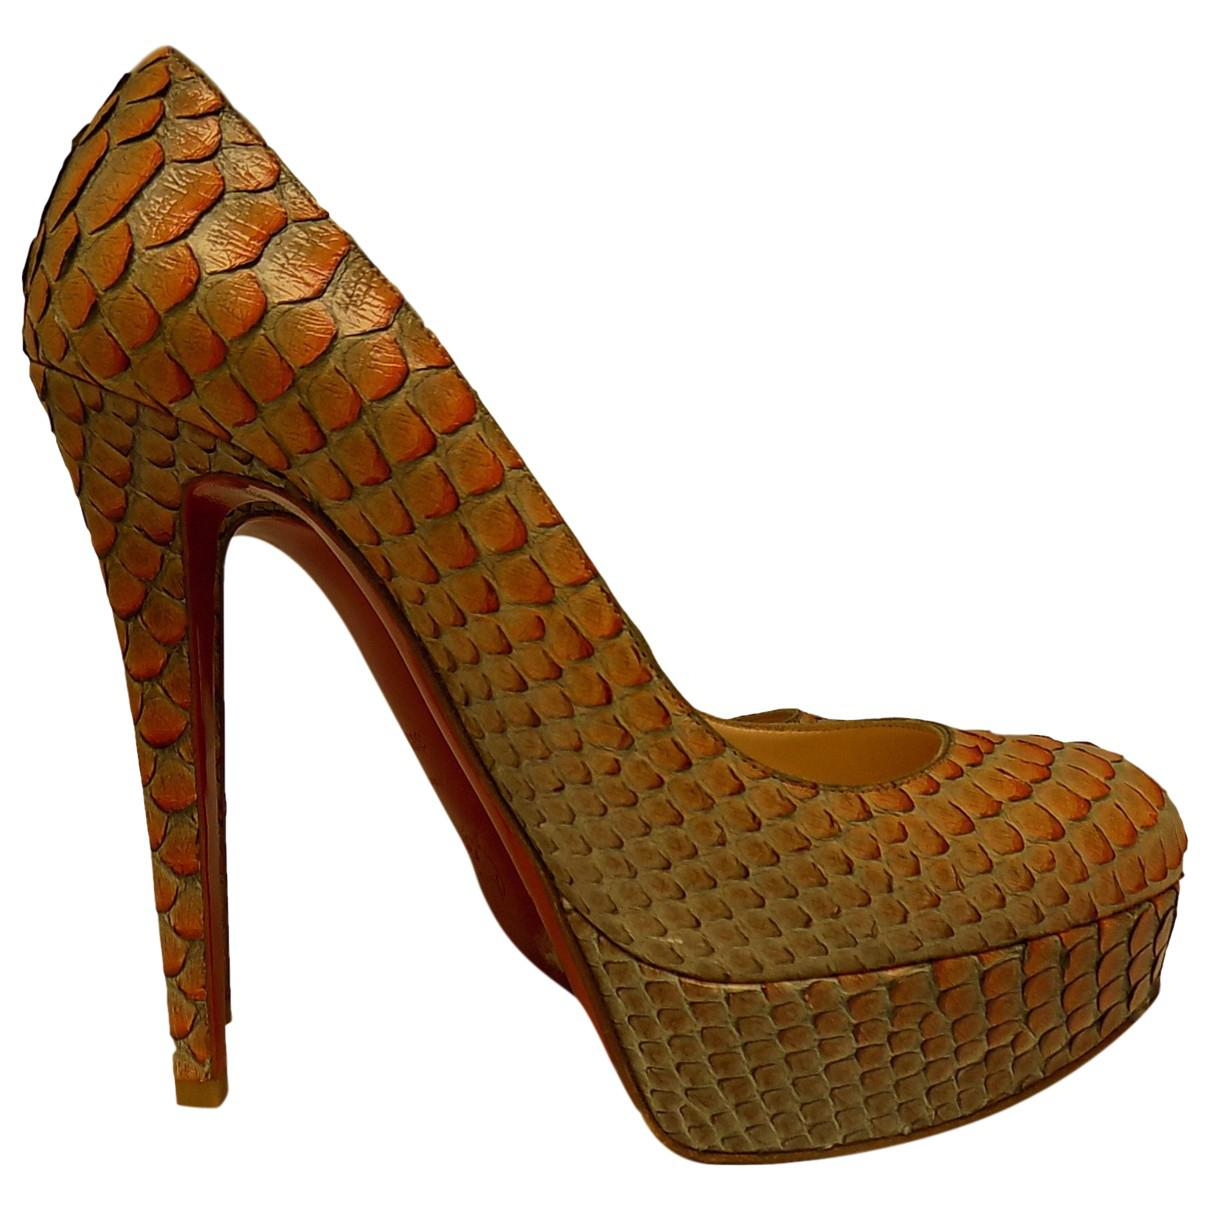 Pre-owned - Exotic leathers sandal Christian Louboutin sThAoq